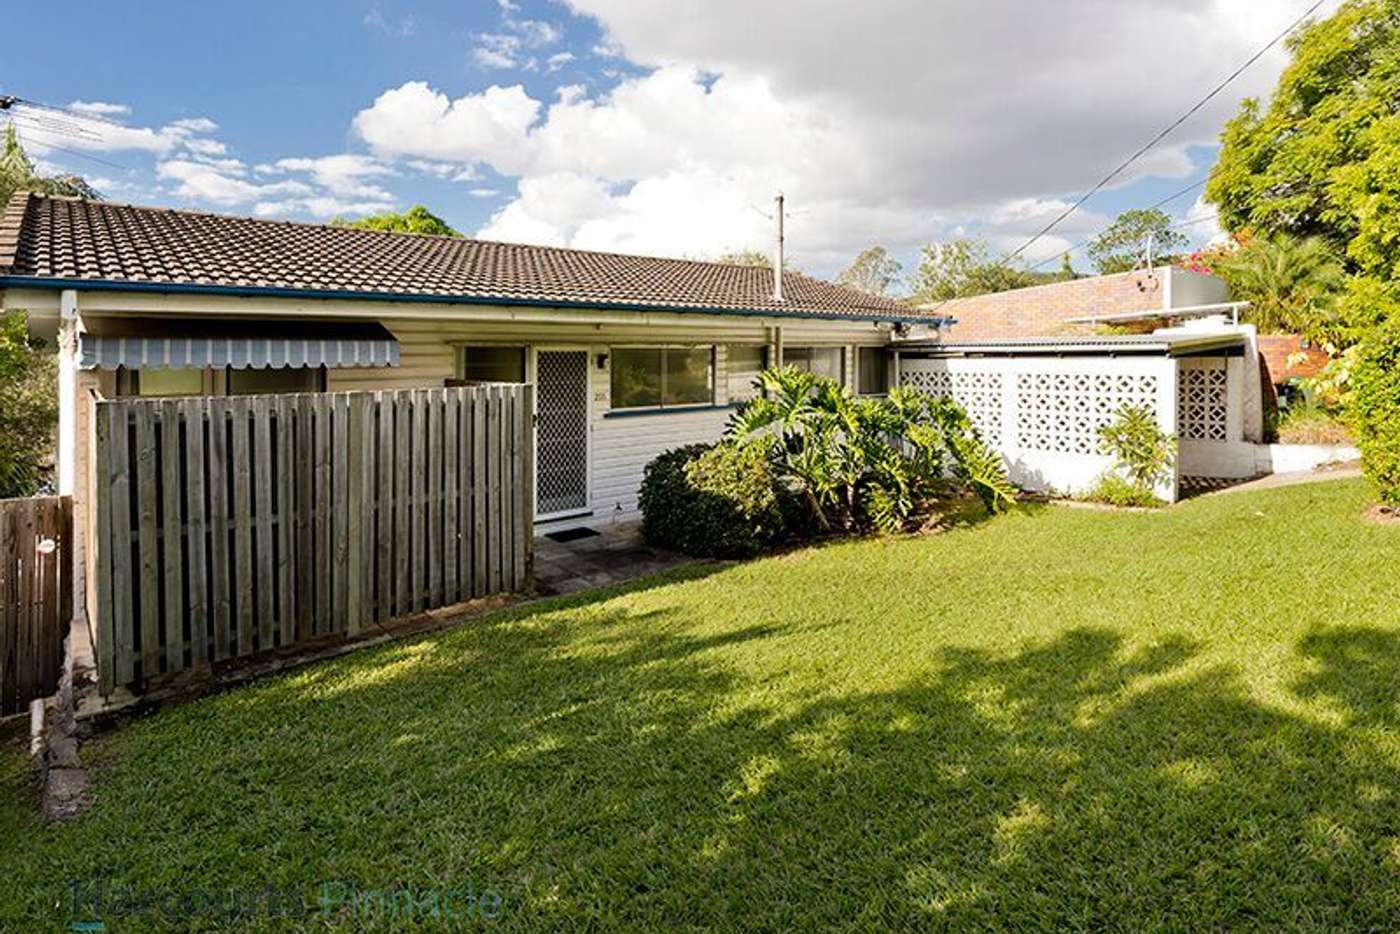 Main view of Homely house listing, 255 Payne Rd, The Gap QLD 4061